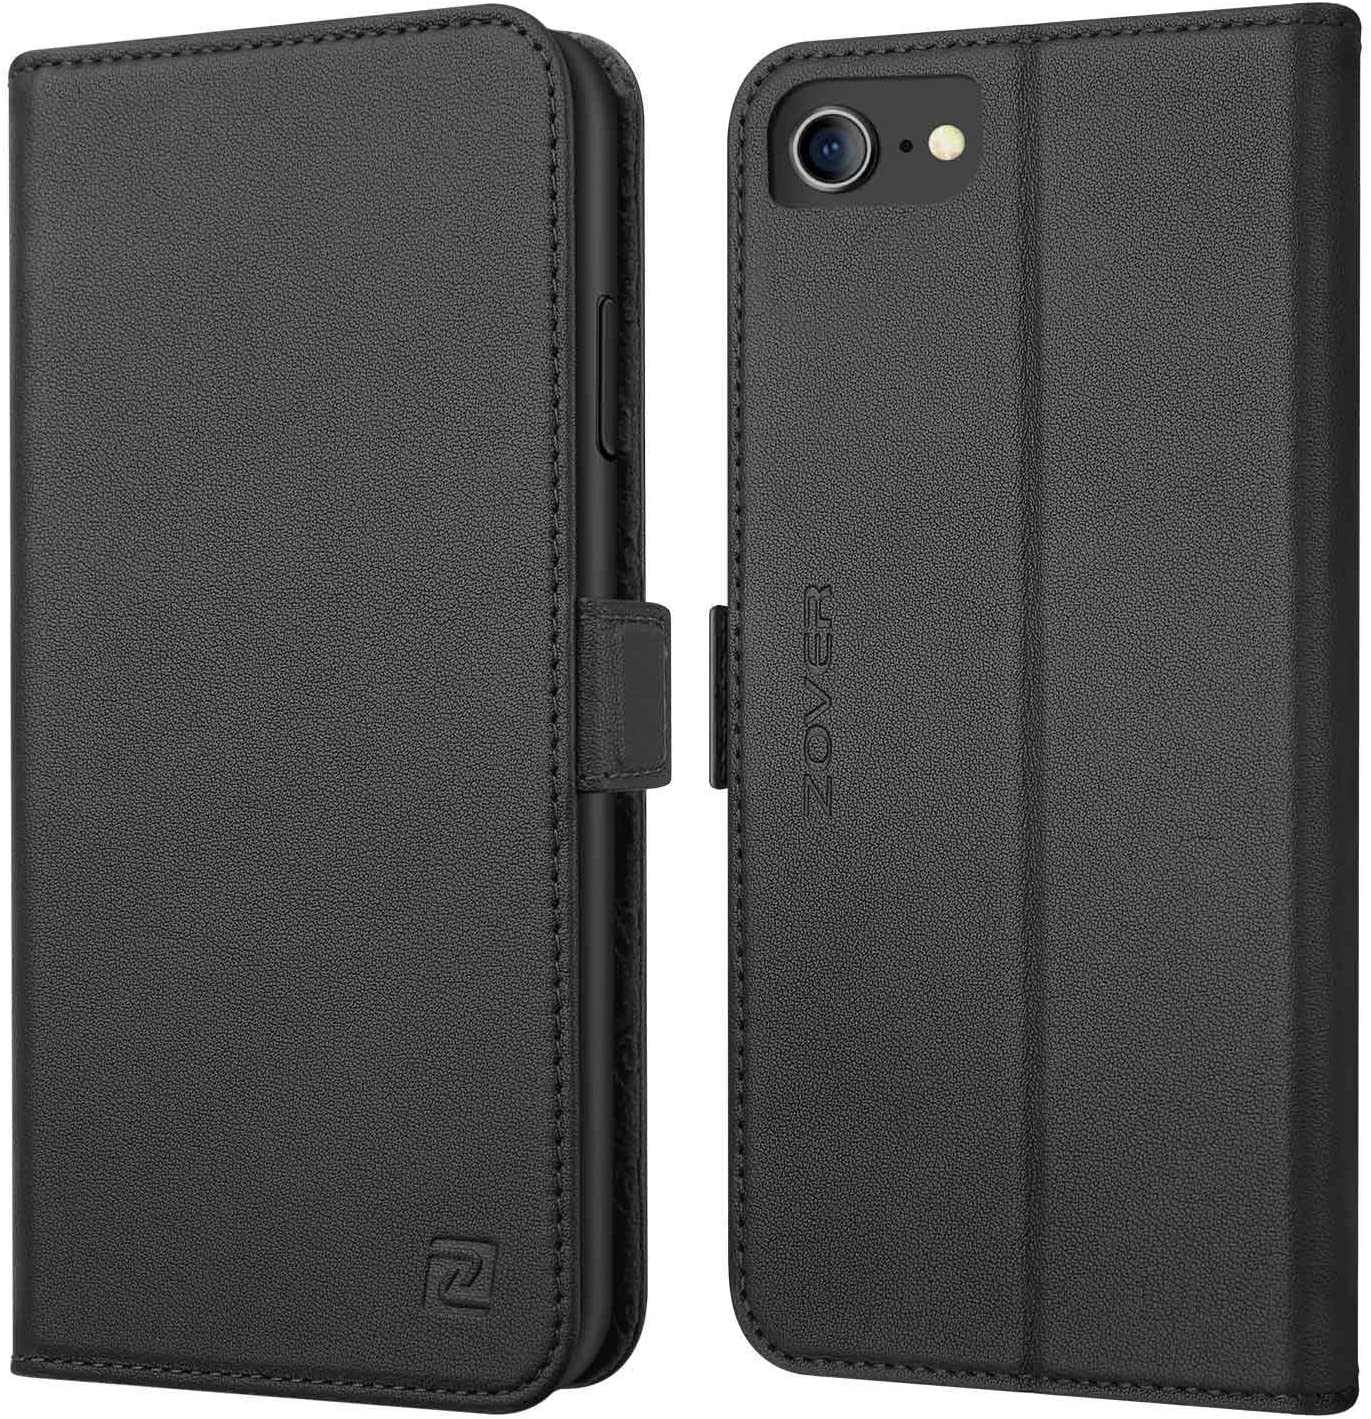 iPhone 8 case iPhone 7 case ZOVER Genuine Leather Case Flip Folio Book Case Wallet Cover with Kickstand Feature Card Slots & ID Holder and Magnetic Closure for iPhone 7 and iPhone 8 Black